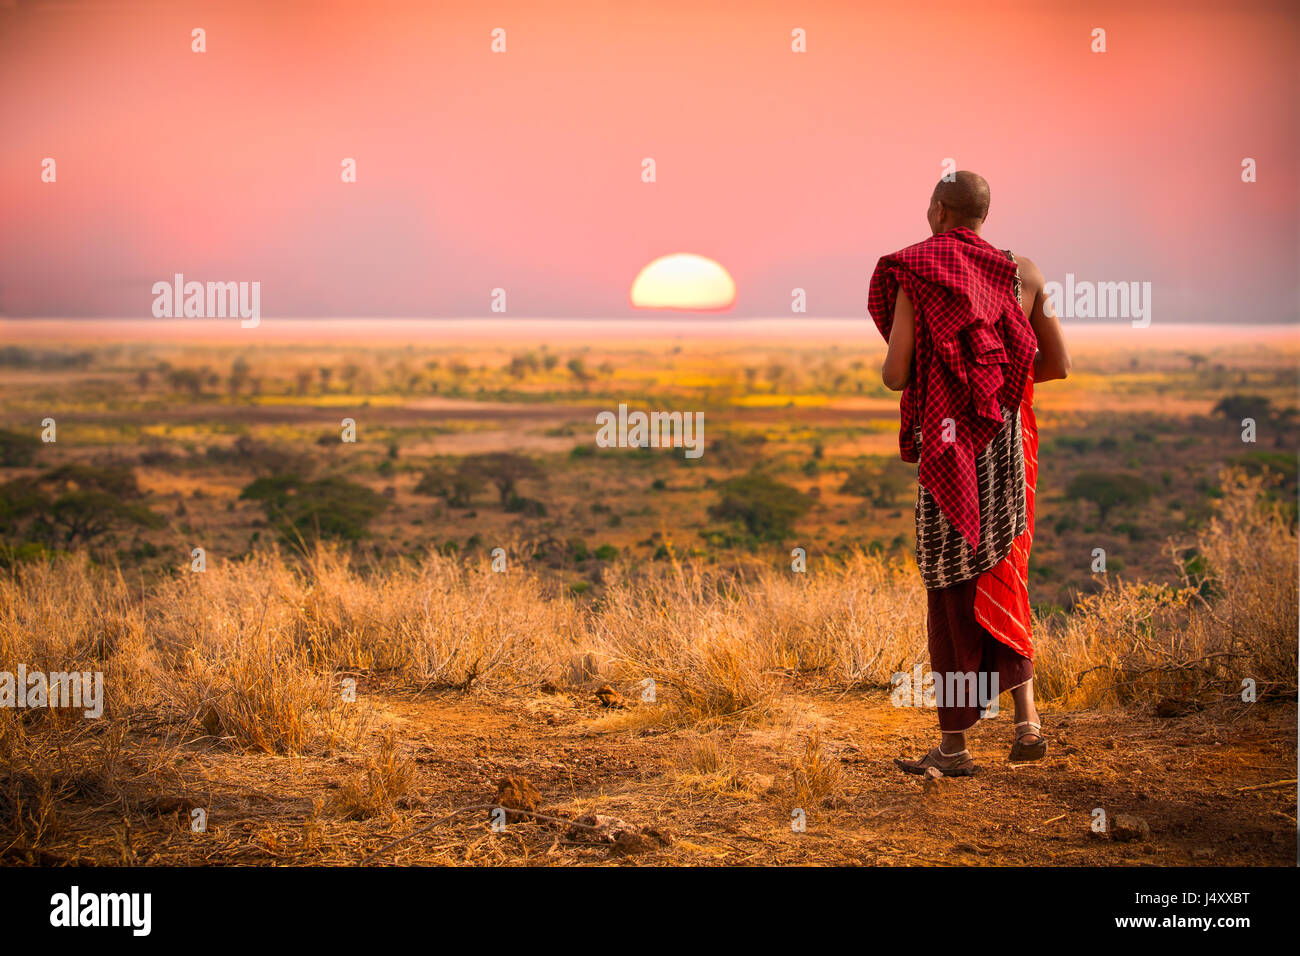 Massai man, wearing traditional blankets, overlooks Serengetti in Tanzania-Edit - Stock Image